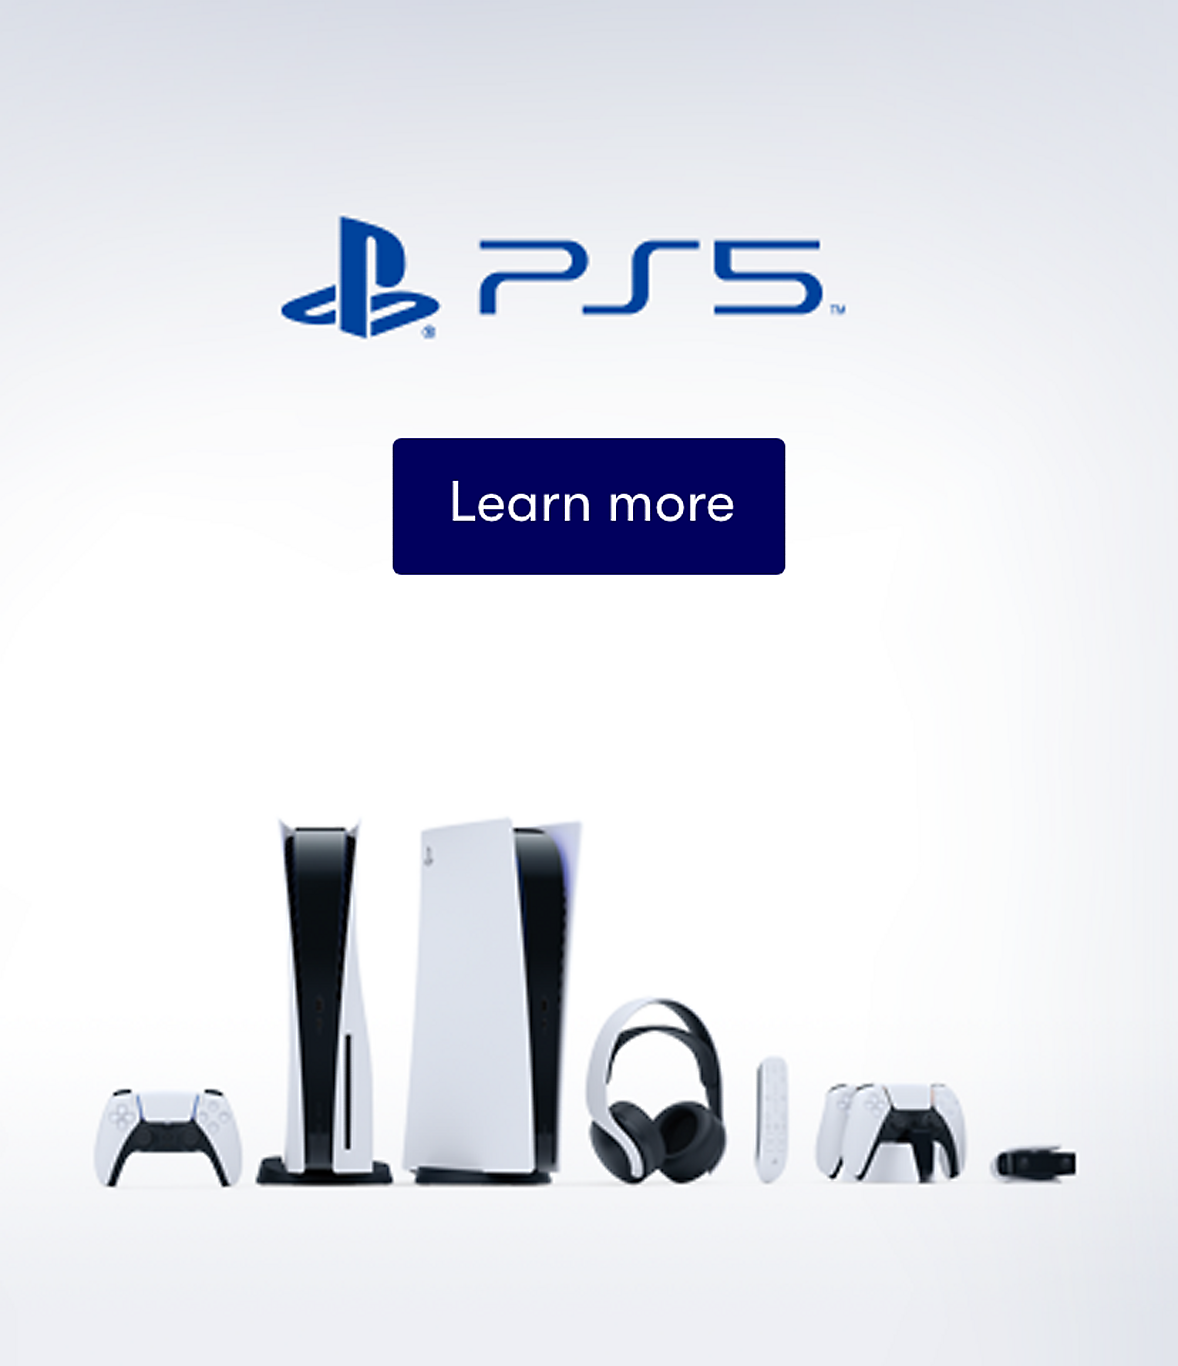 The New PS5 Family